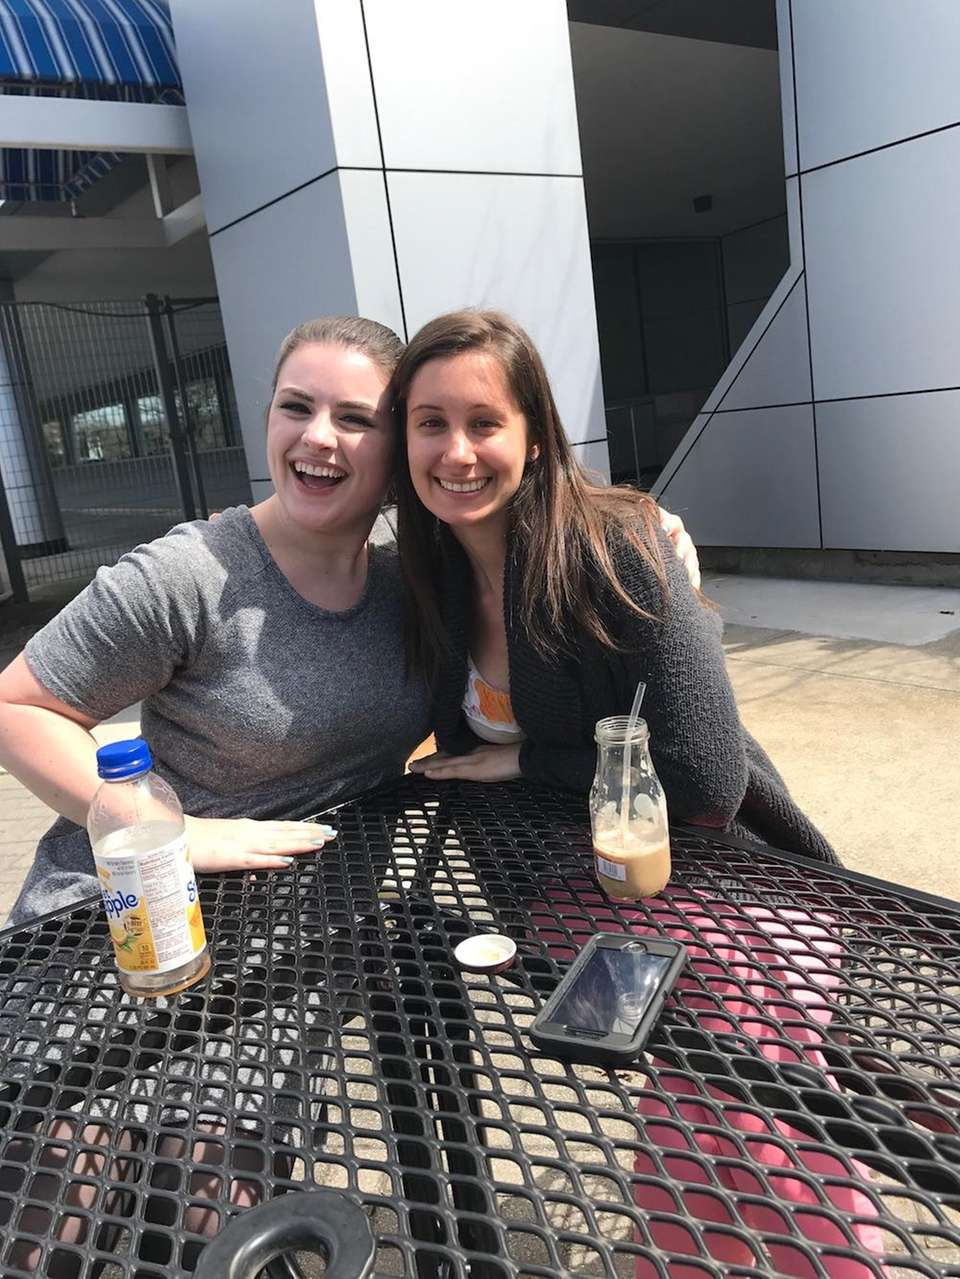 Enjoying the beautiful weather with my fabulous co-worker